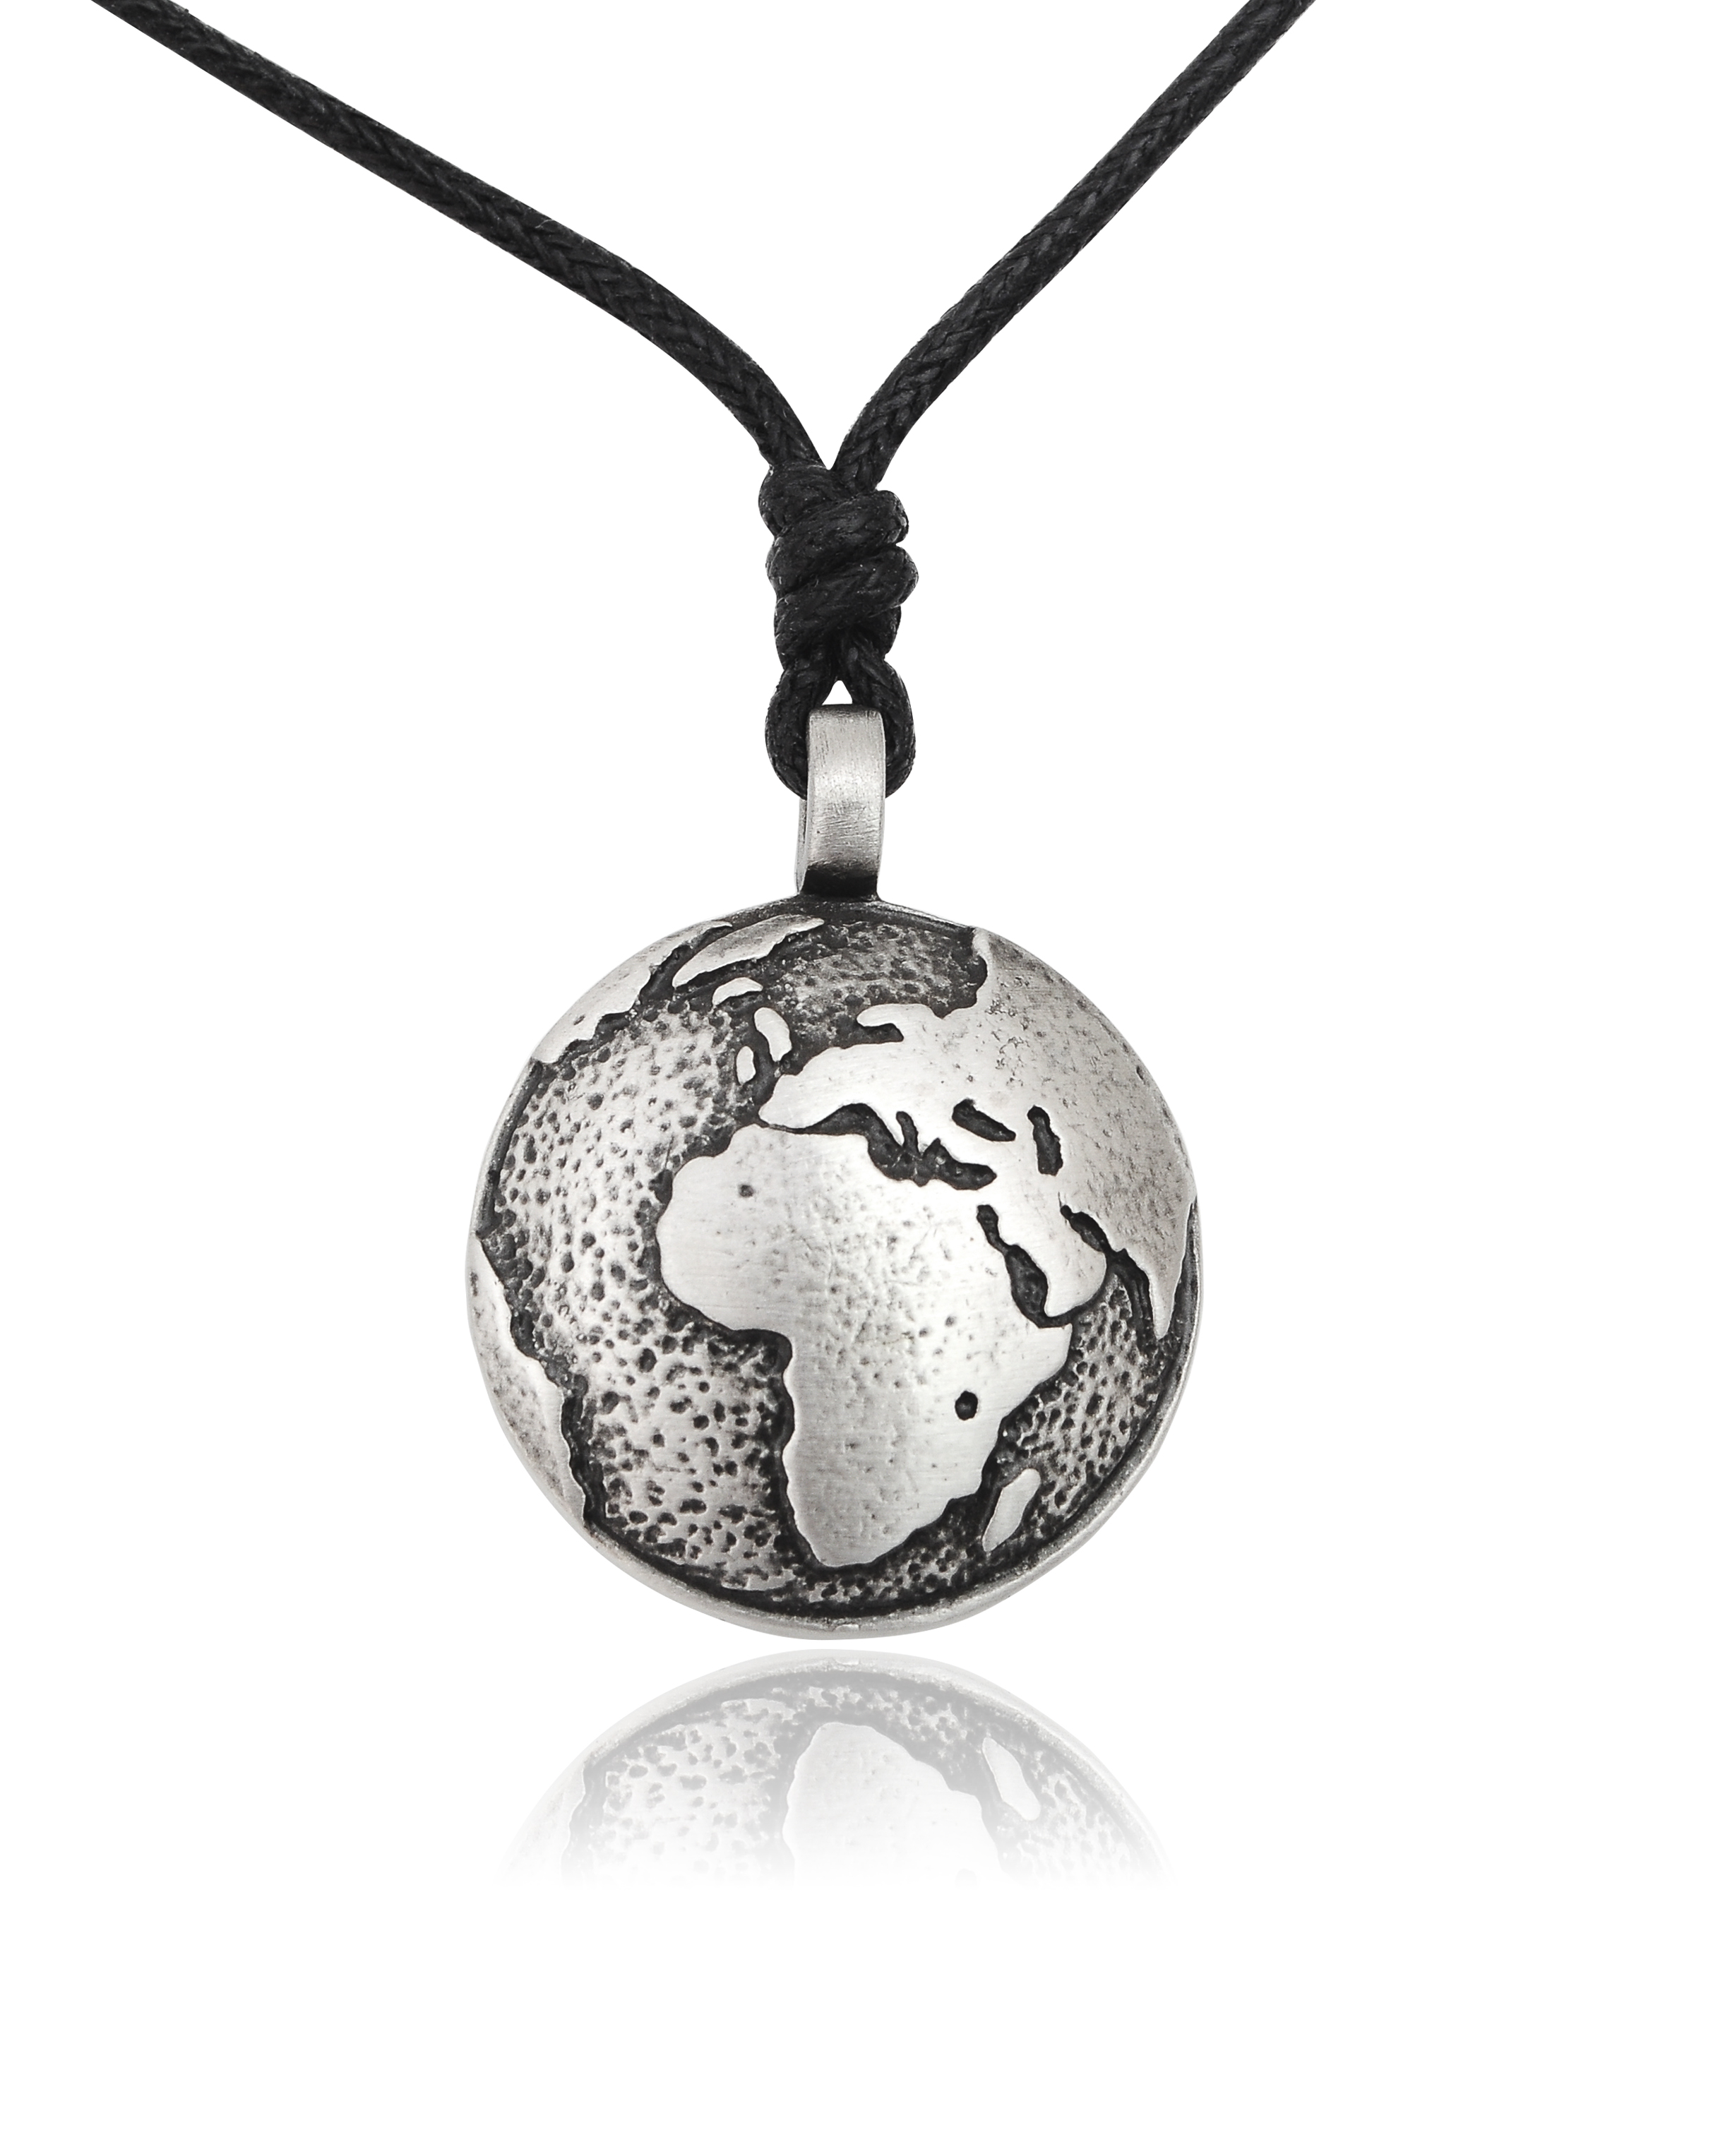 SOCCER BALL 3D FINE PEWTER PENDANT CHARM MADE IN THE UNITED STATES